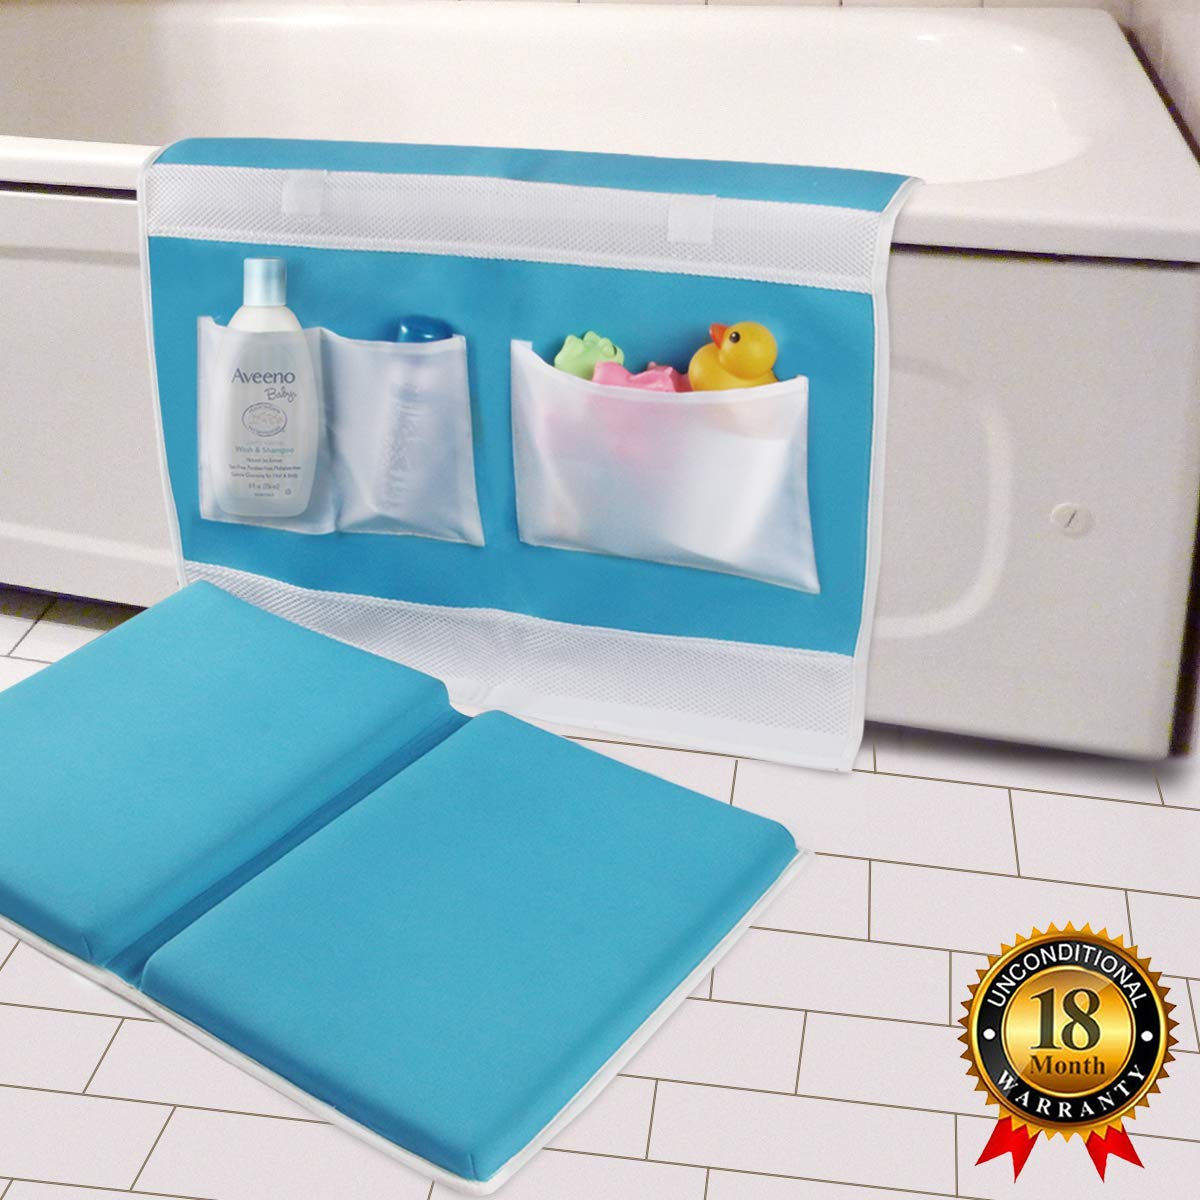 Bath Kneeler and Elbow Rest Bathtub Kneeling Pad with Toy Organizer - Baby Kneeling Mat for Baby Bath Time, Garden Work, Exercise - Detachable and Foldable Child Bath Tub Padding for Parents - Blue TQS